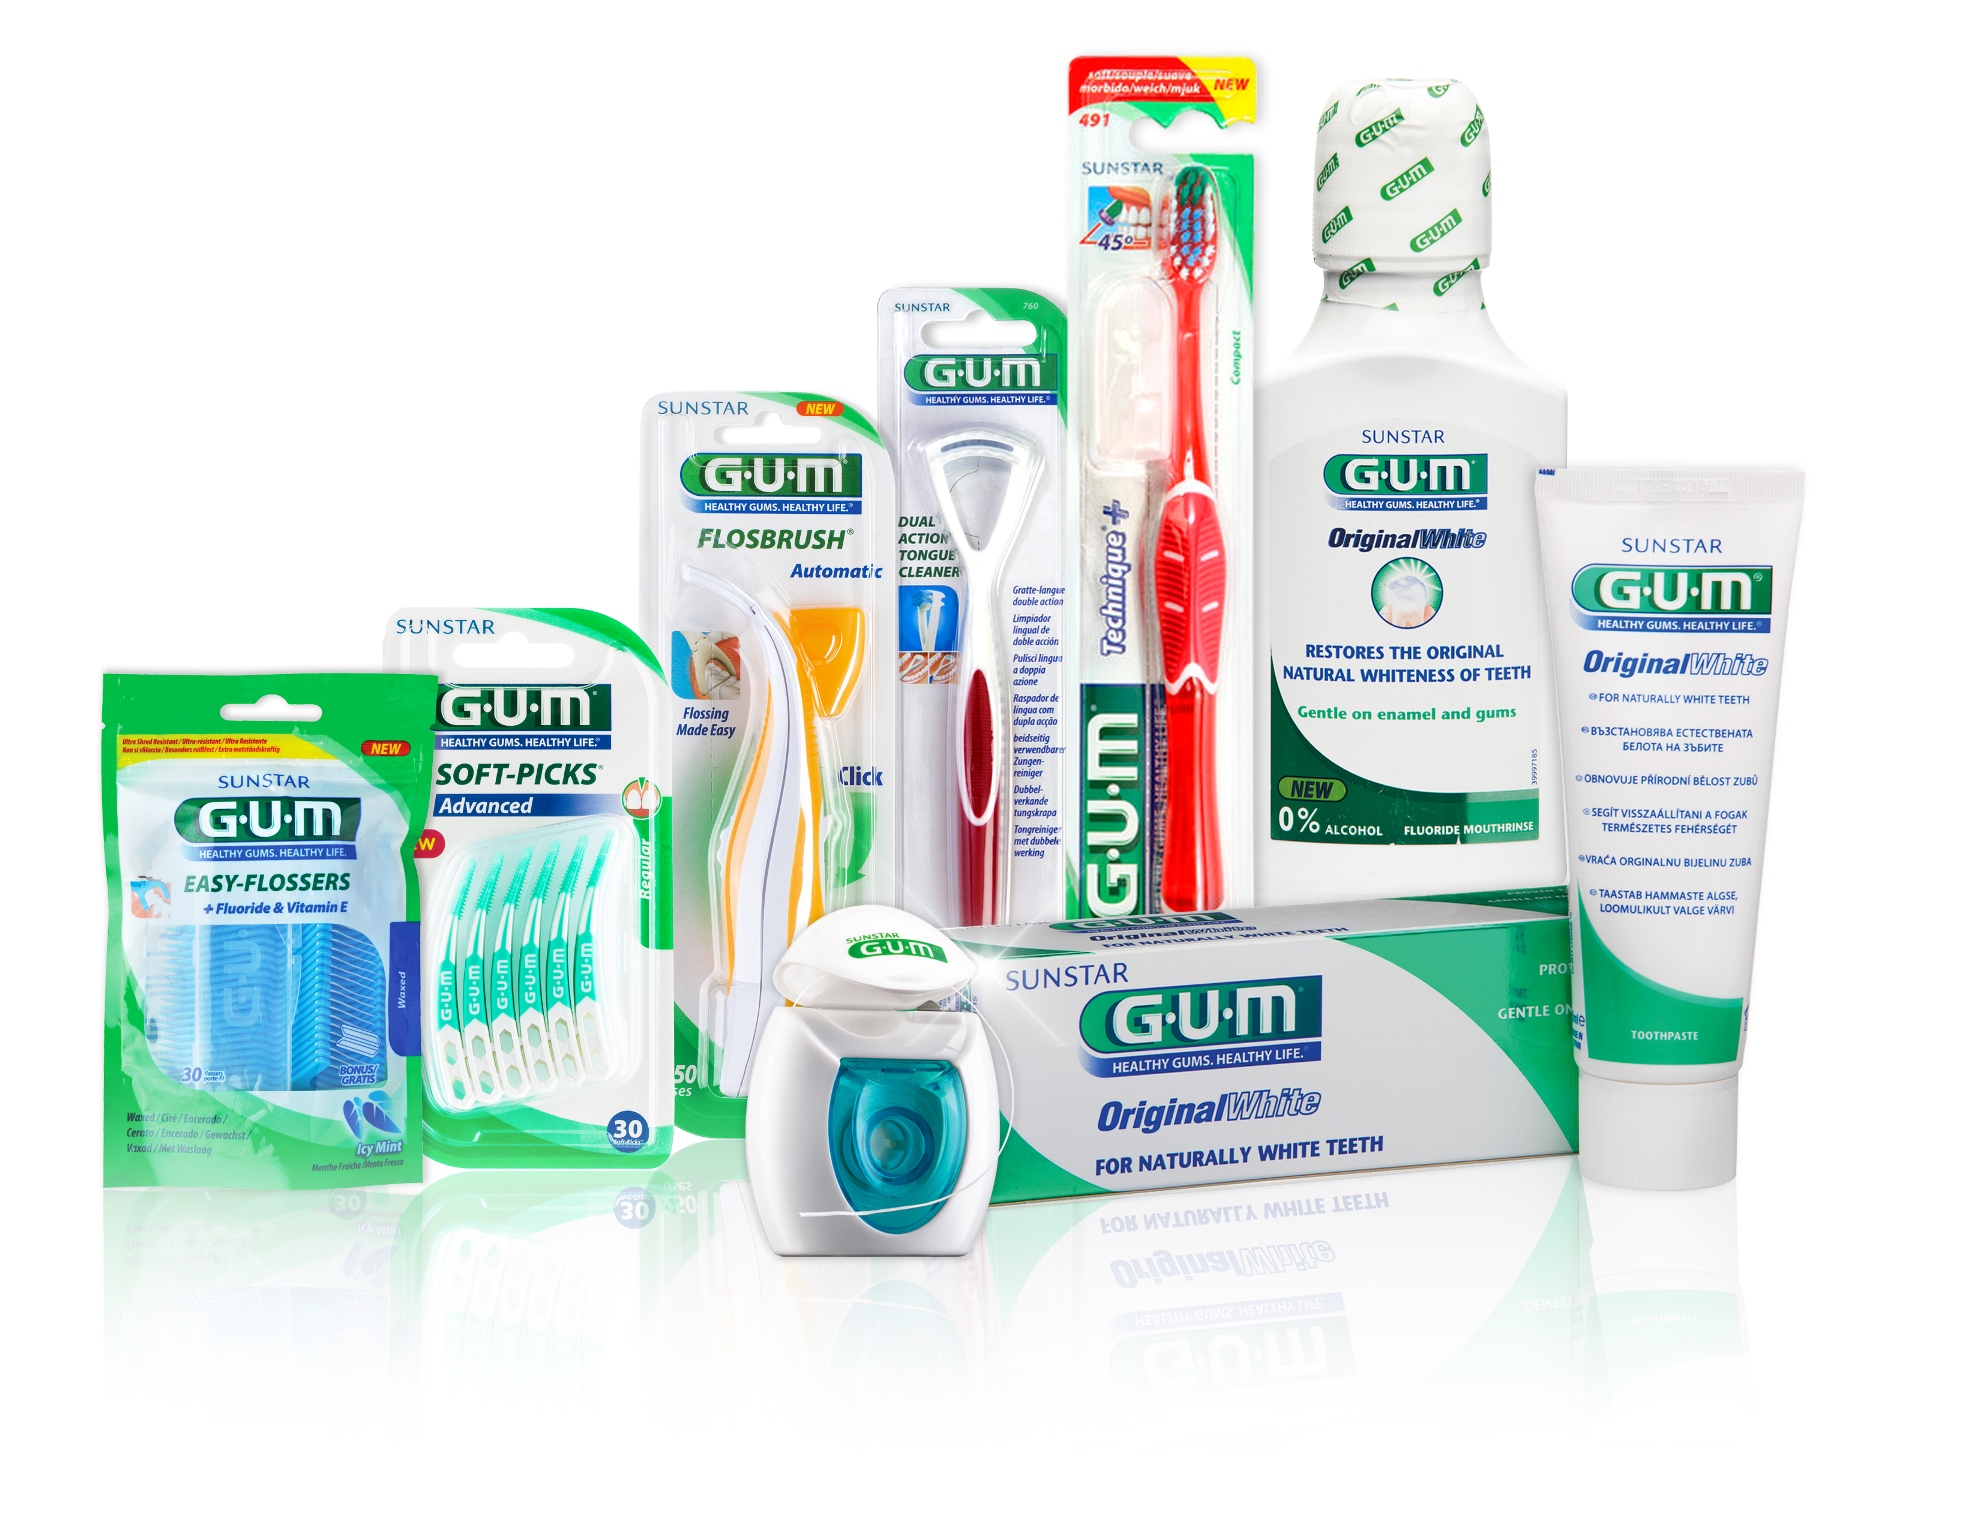 Win One Of Six Sunstar GUM Hampers, Worth Over R500 each!